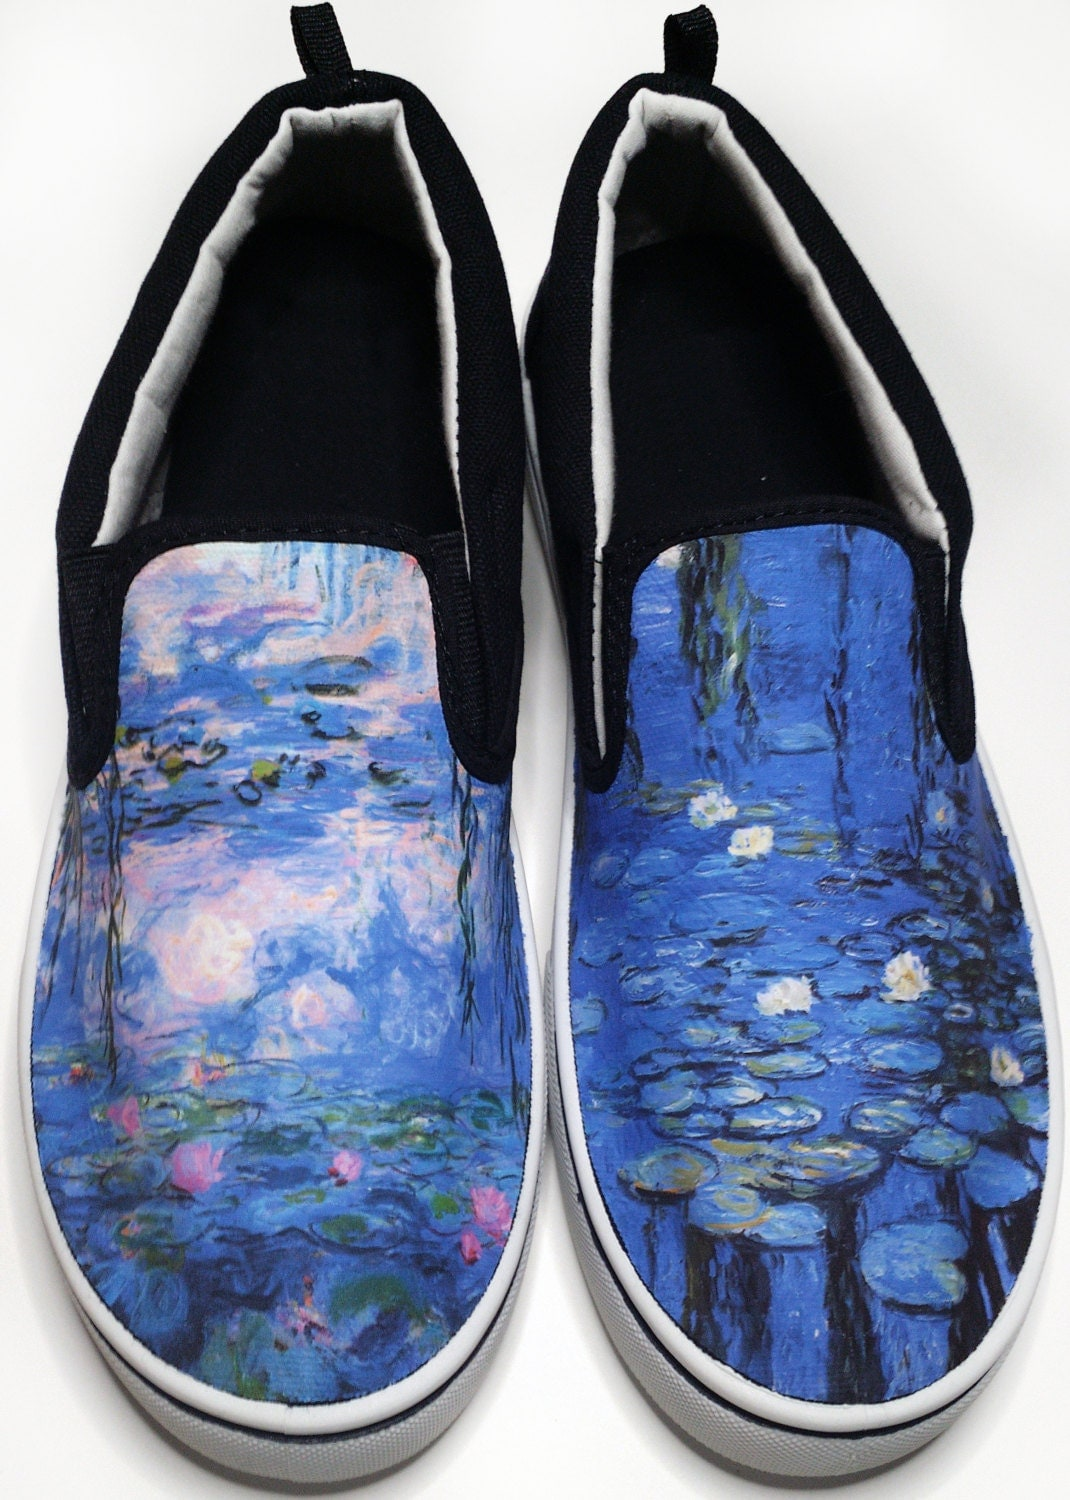 custom vans brand monet water lilies canvas shoes